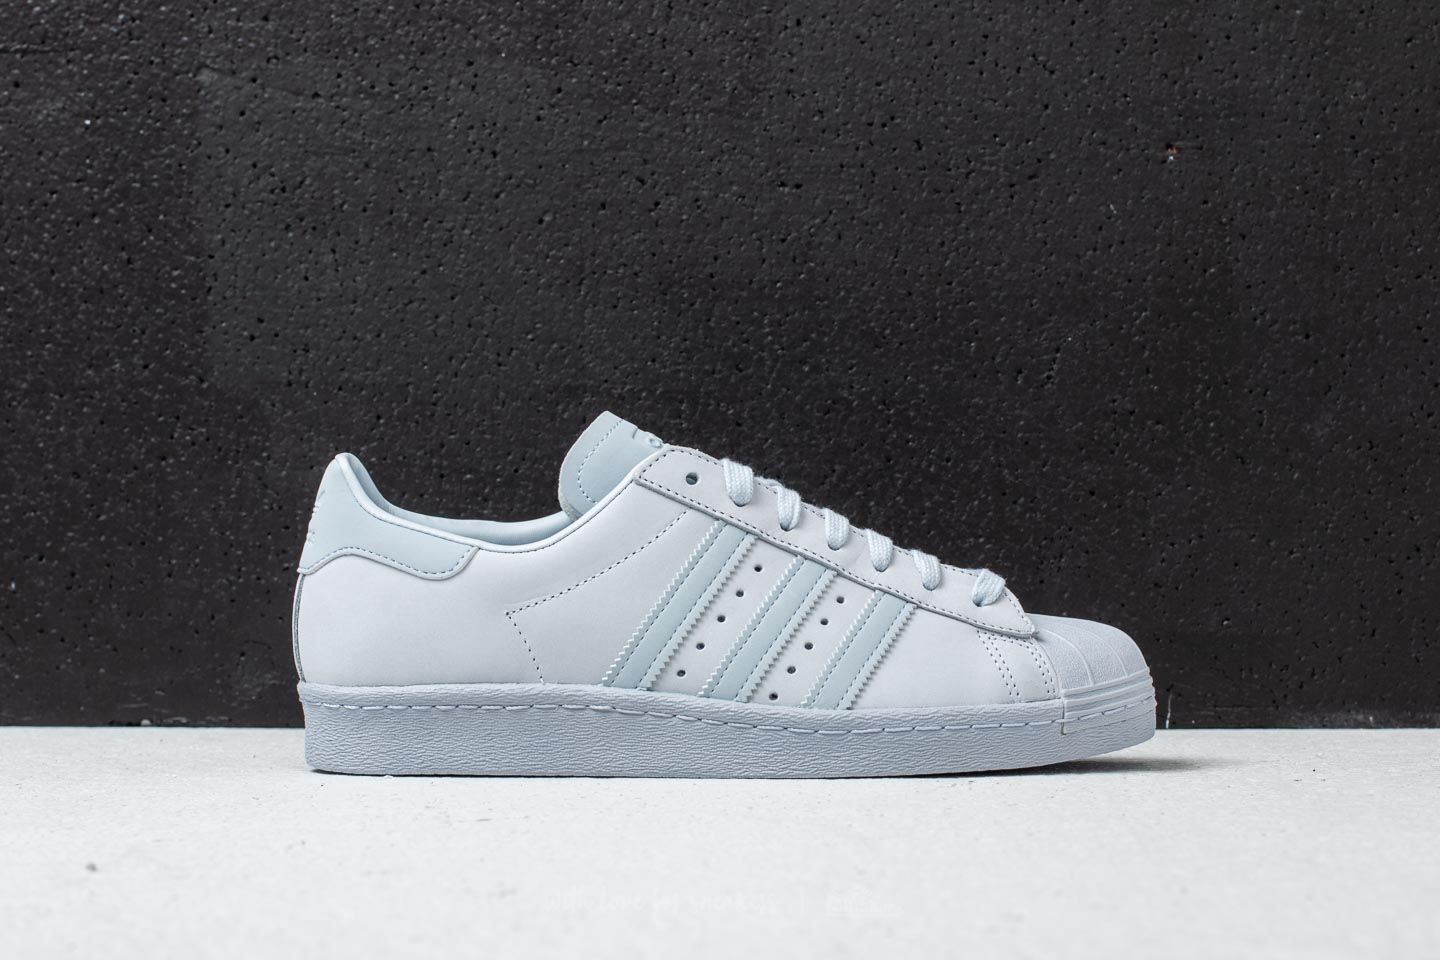 buy popular 64573 61d8d adidas Superstar 80s Aero Blue/Aero Blue/Aero Blue | Footshop